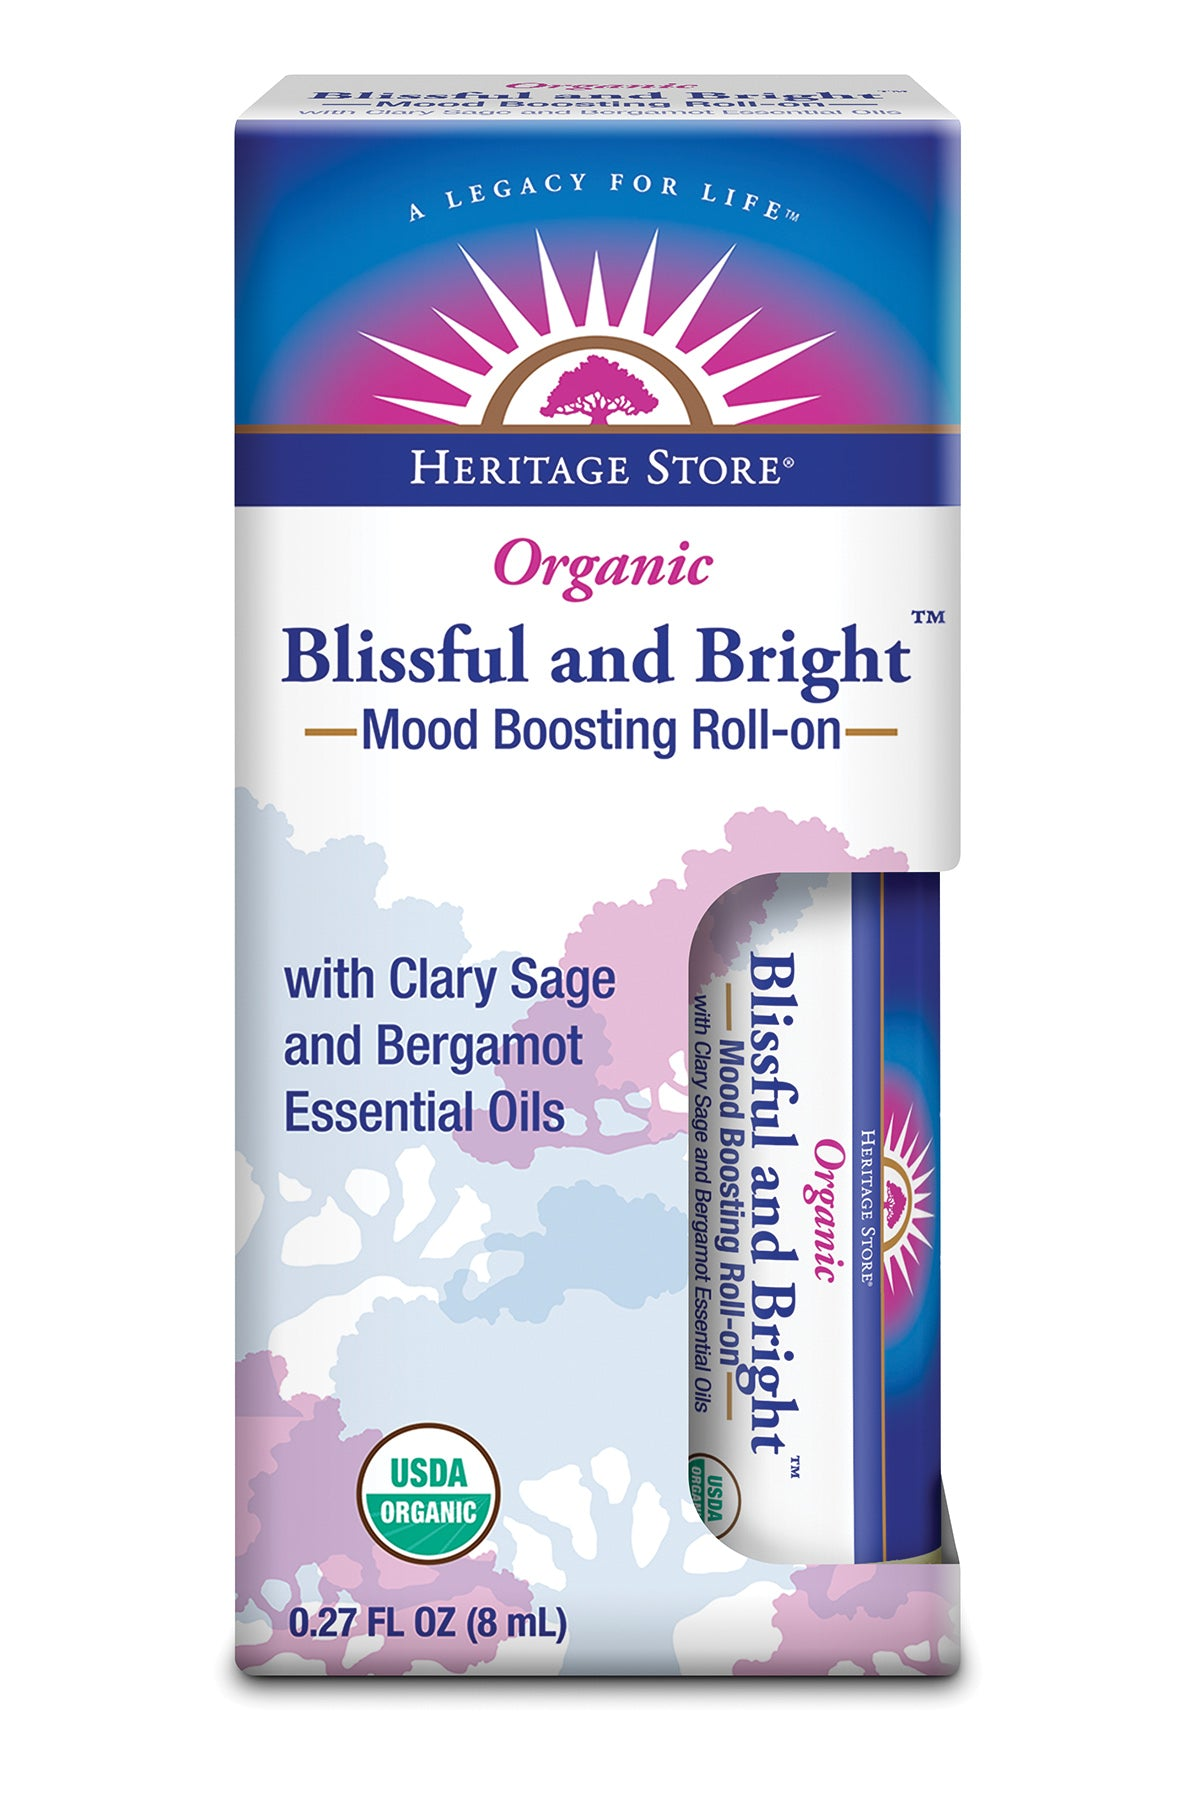 Blissful and Bright Roll-On